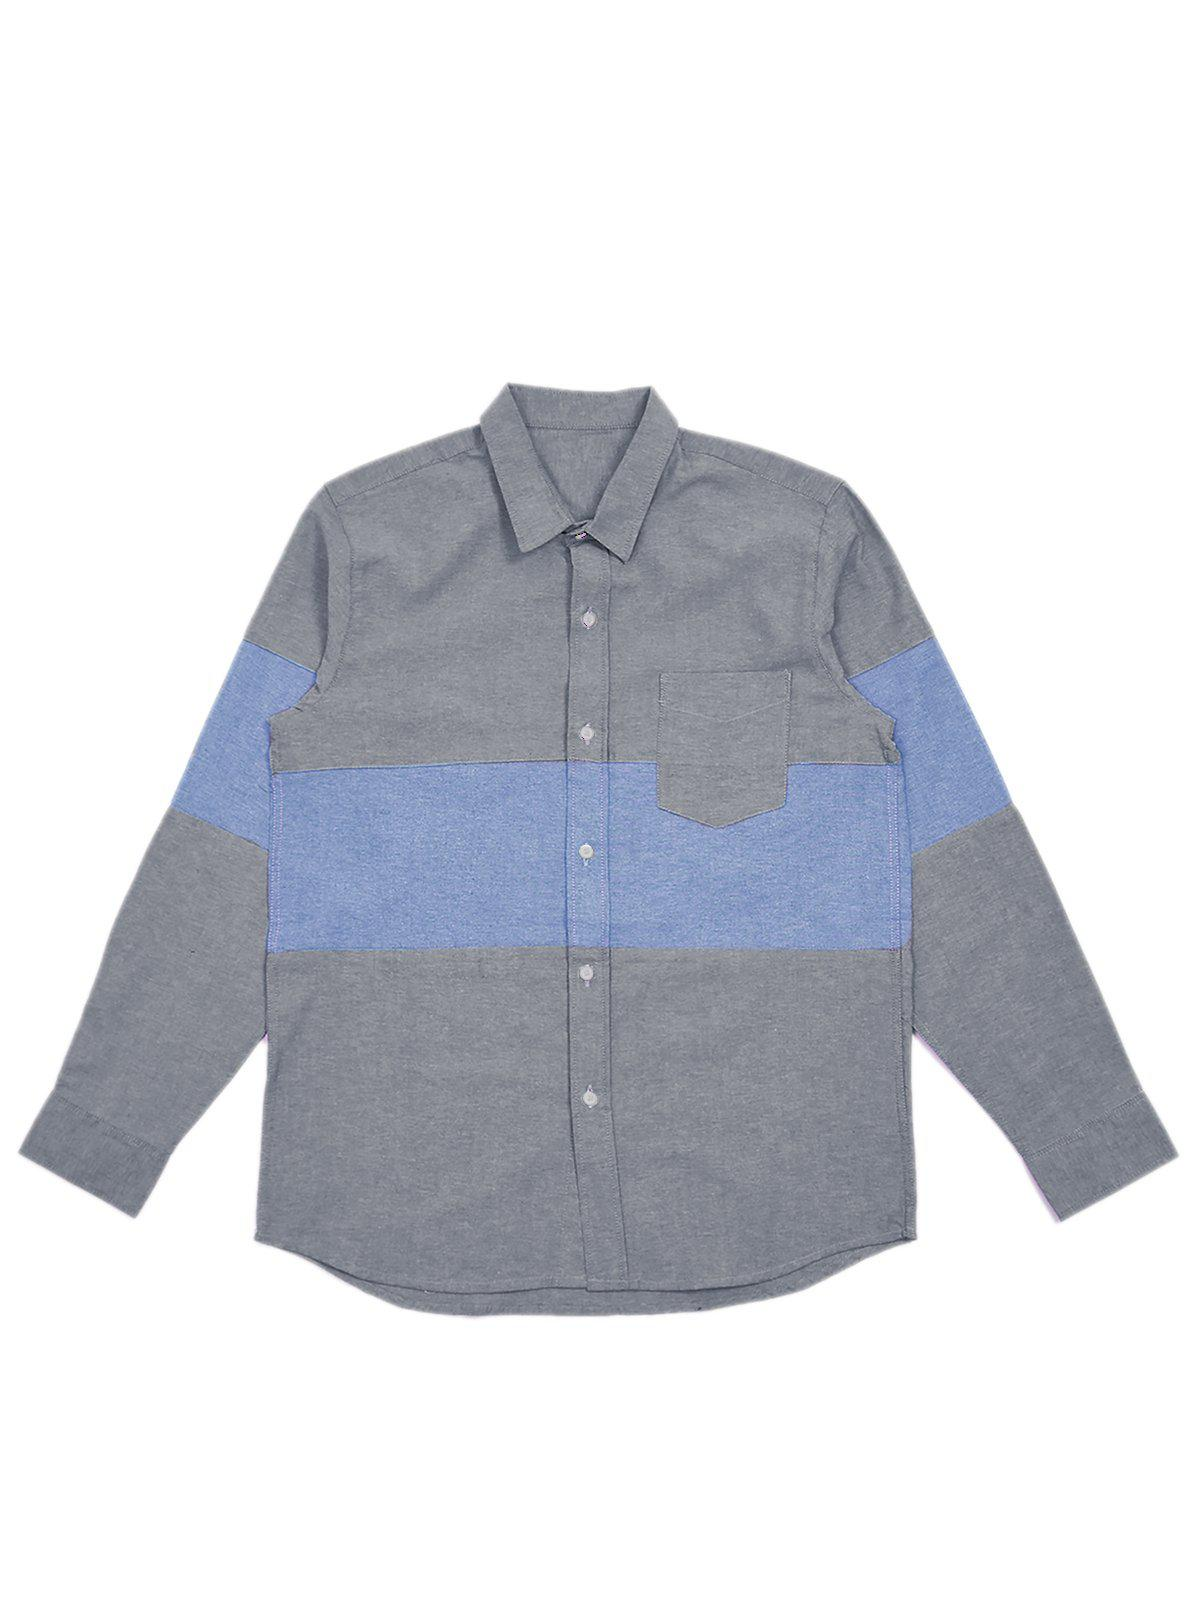 Jackhammer Oxford Panel Shirt Grey - MORE by Morello Indonesia